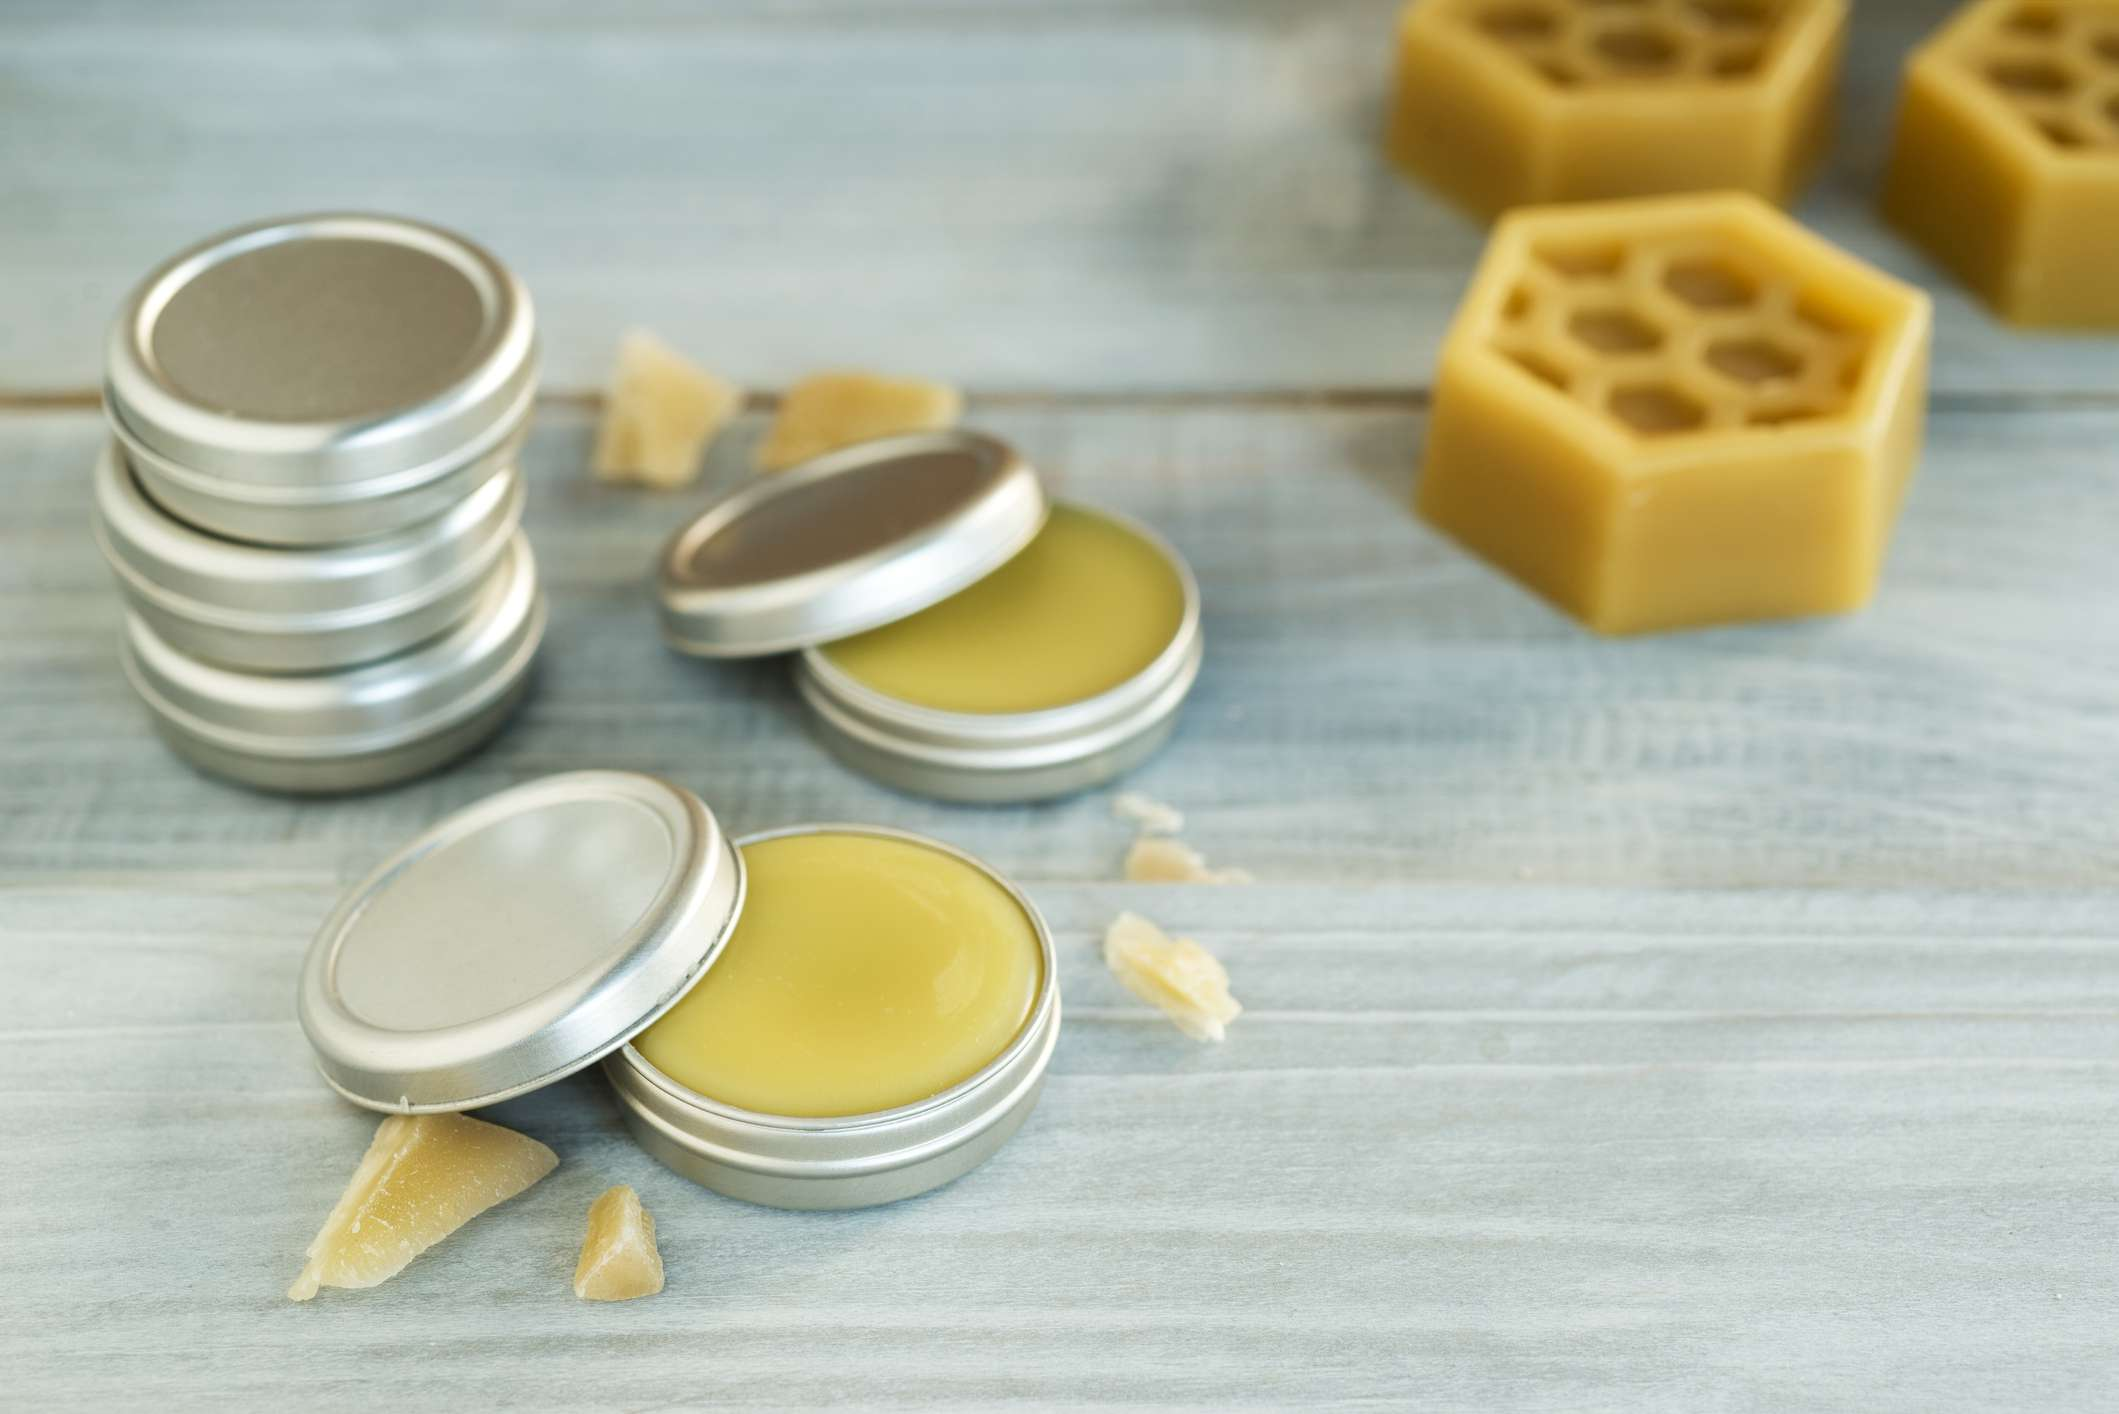 Tins of homemade lip balm on wooden table background.